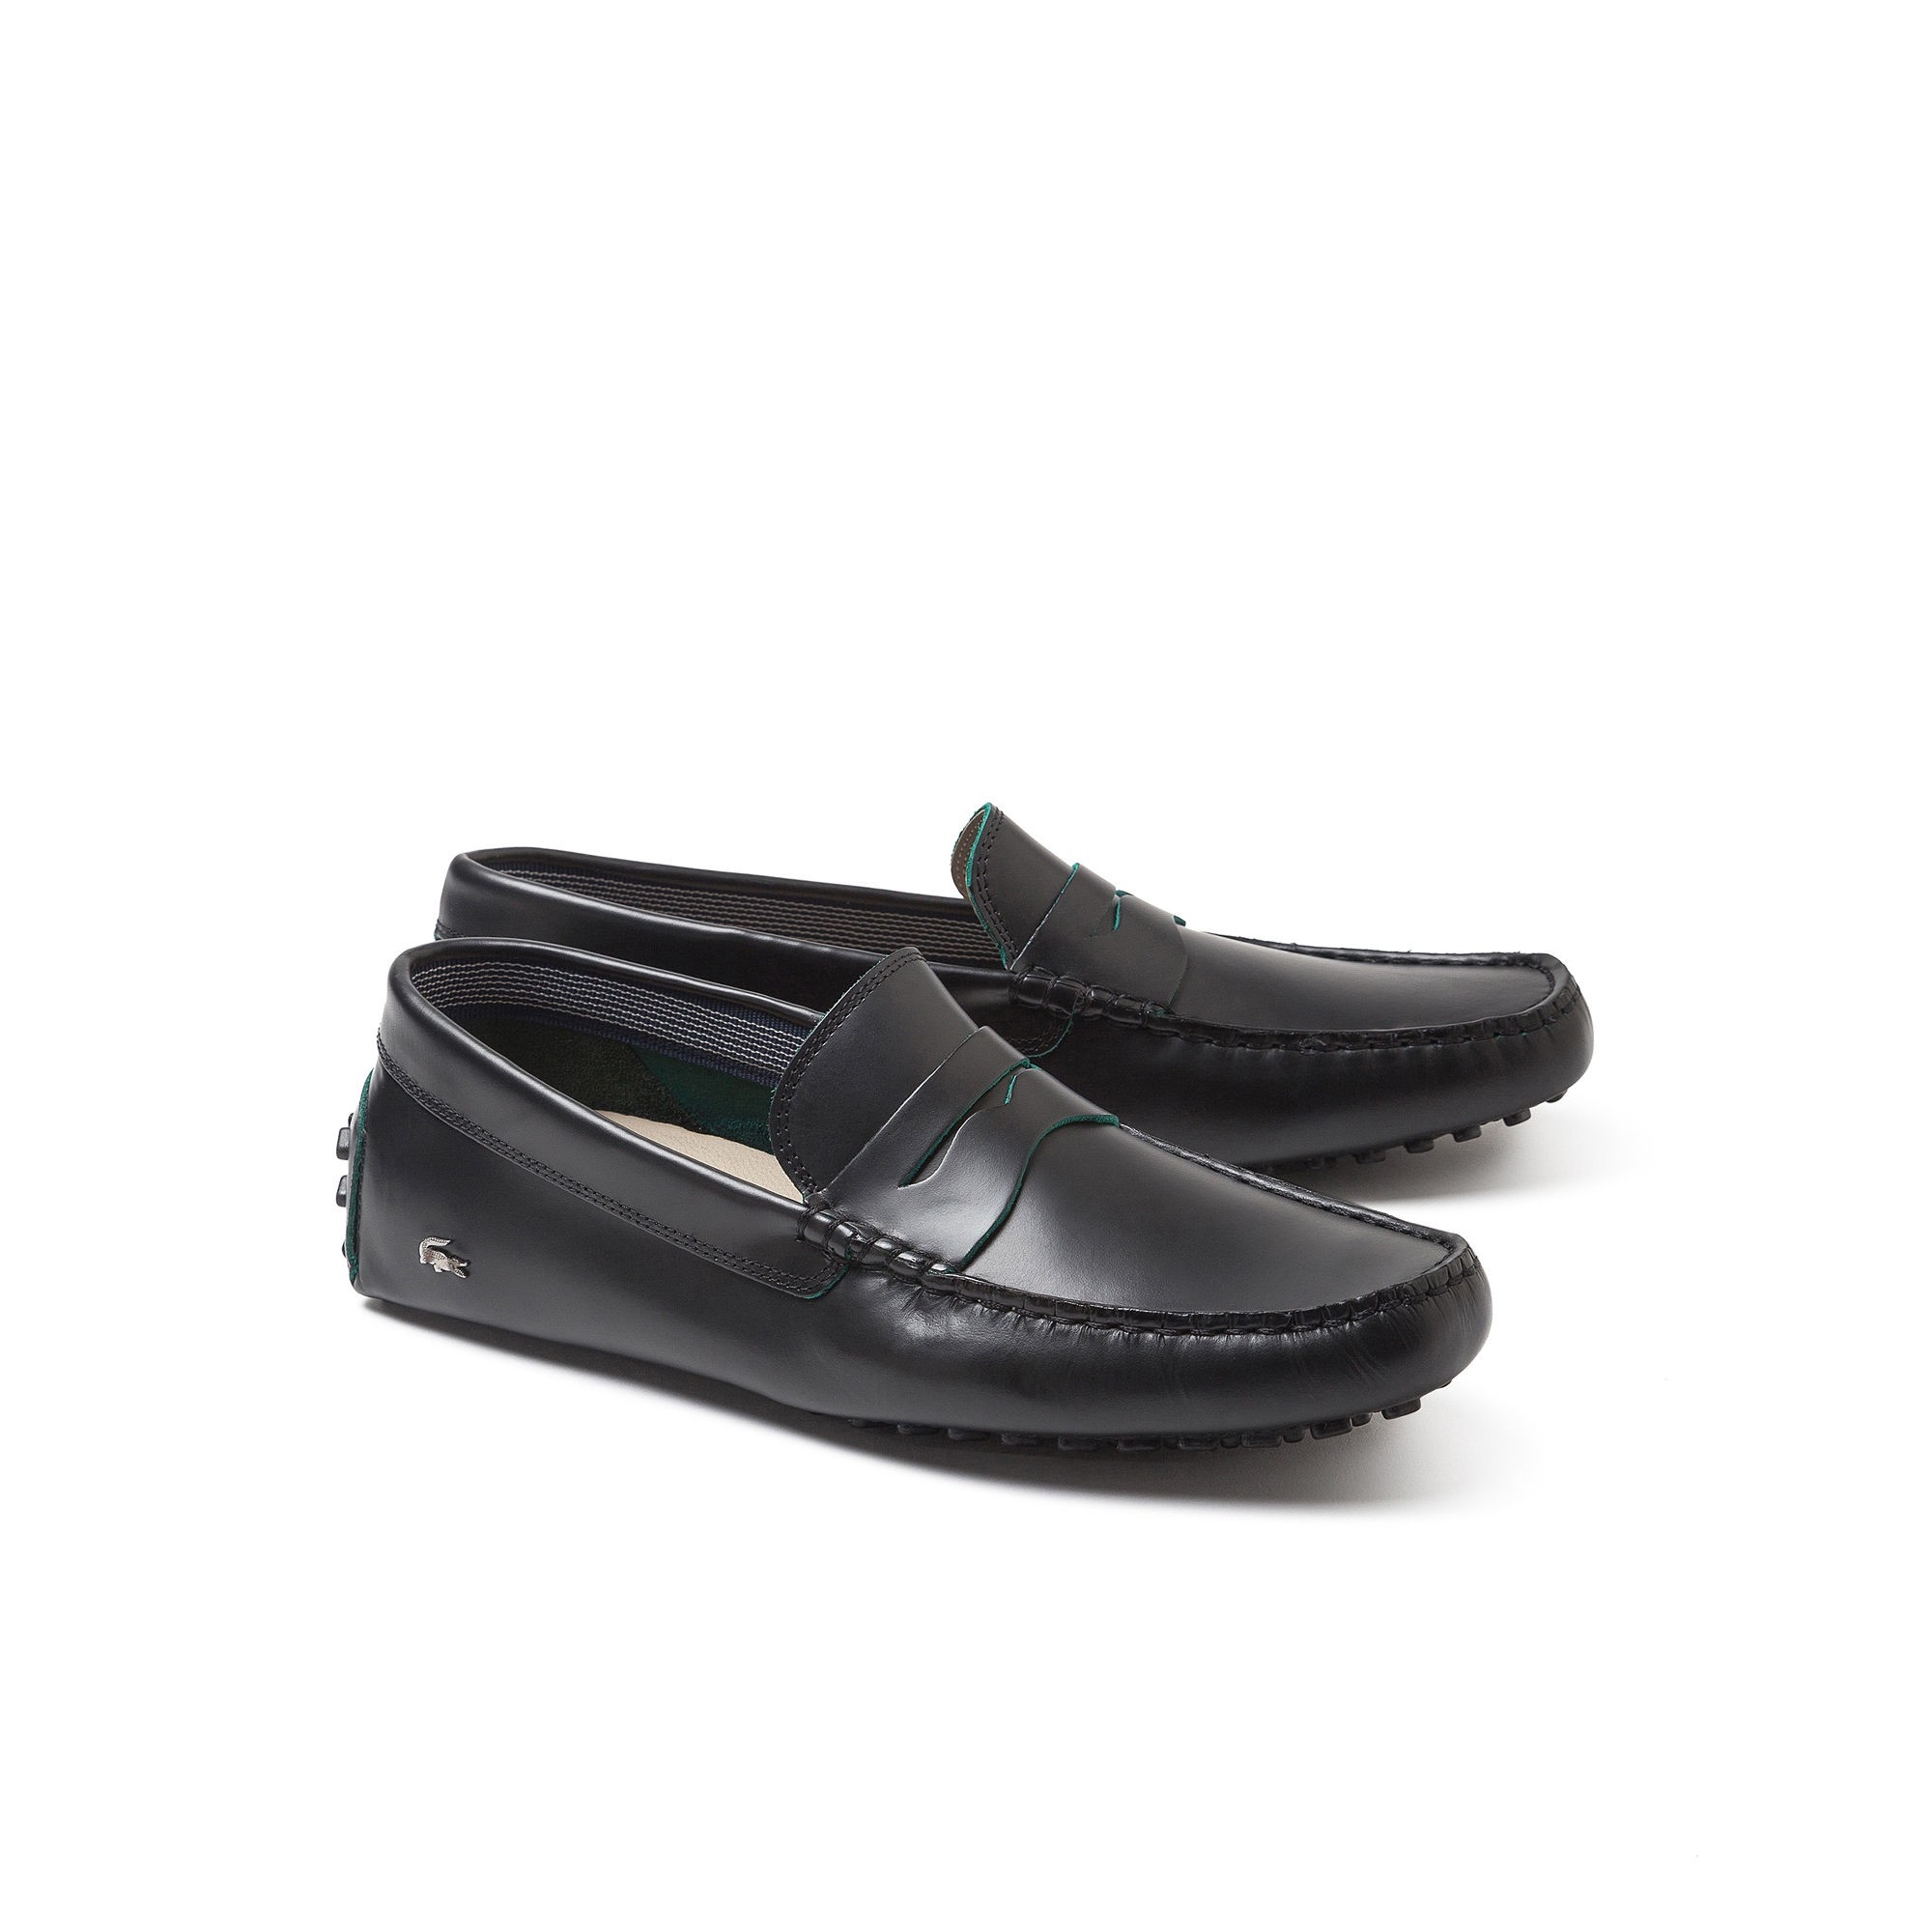 a2660f335 LACOSTE Men S Concours Loafers - Black